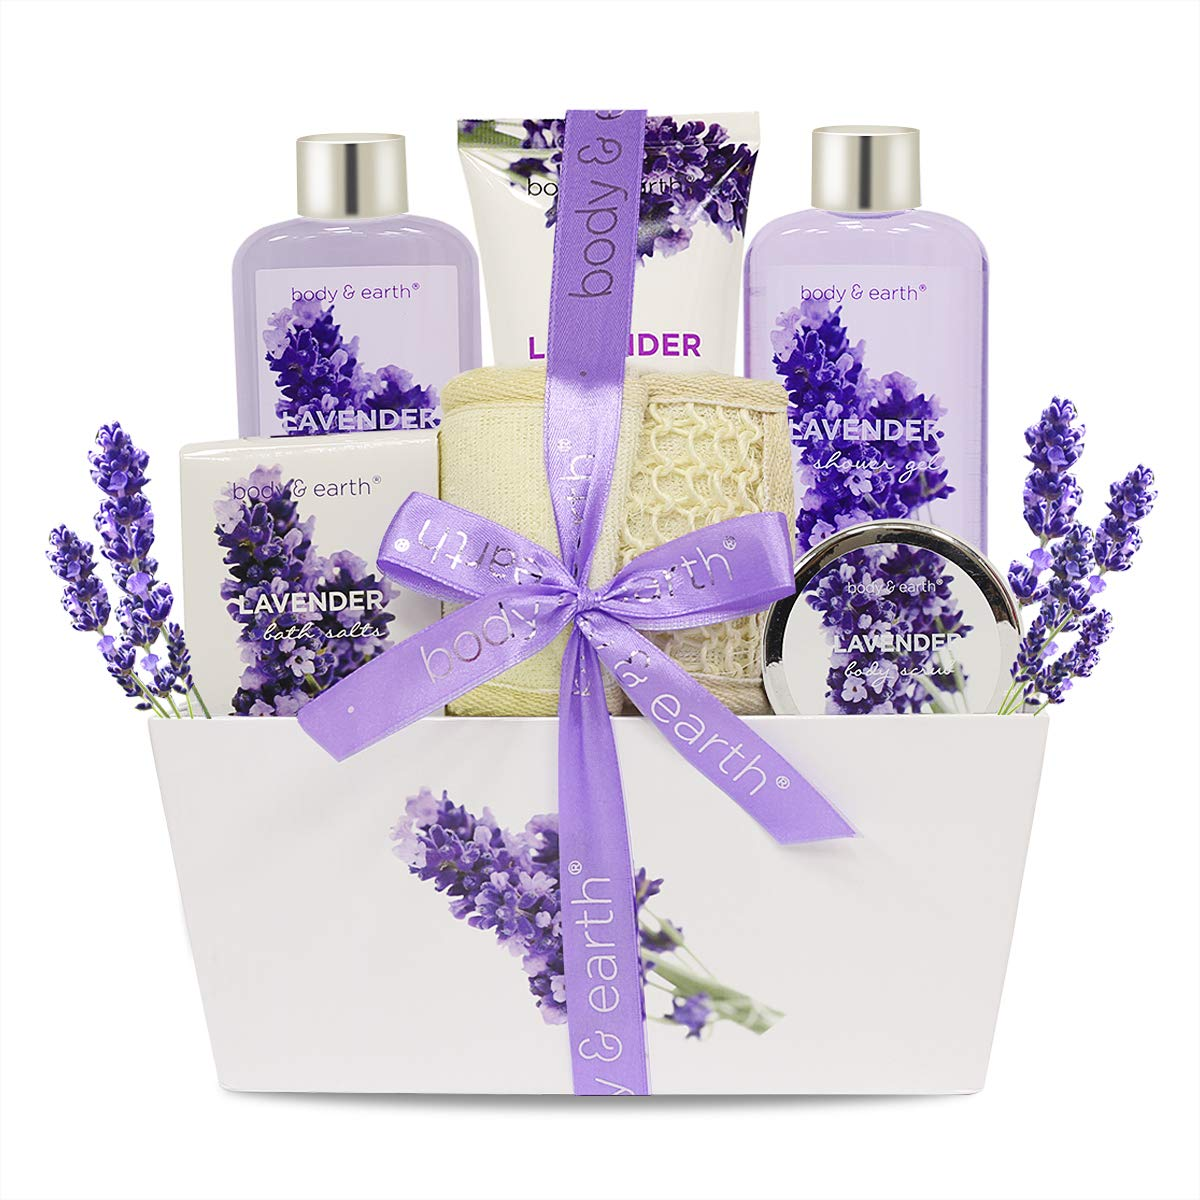 Bath Spa Gift Set, Body & Earth Gift Basket 6-Piece Lavender Scented Spa Basket Kits for Women, Contains Shower Gel, Bubble Bath, Body Lotion, Bath Salt, Body Scrub, Back Scrubber, Best Gift for Her by BODY & EARTH